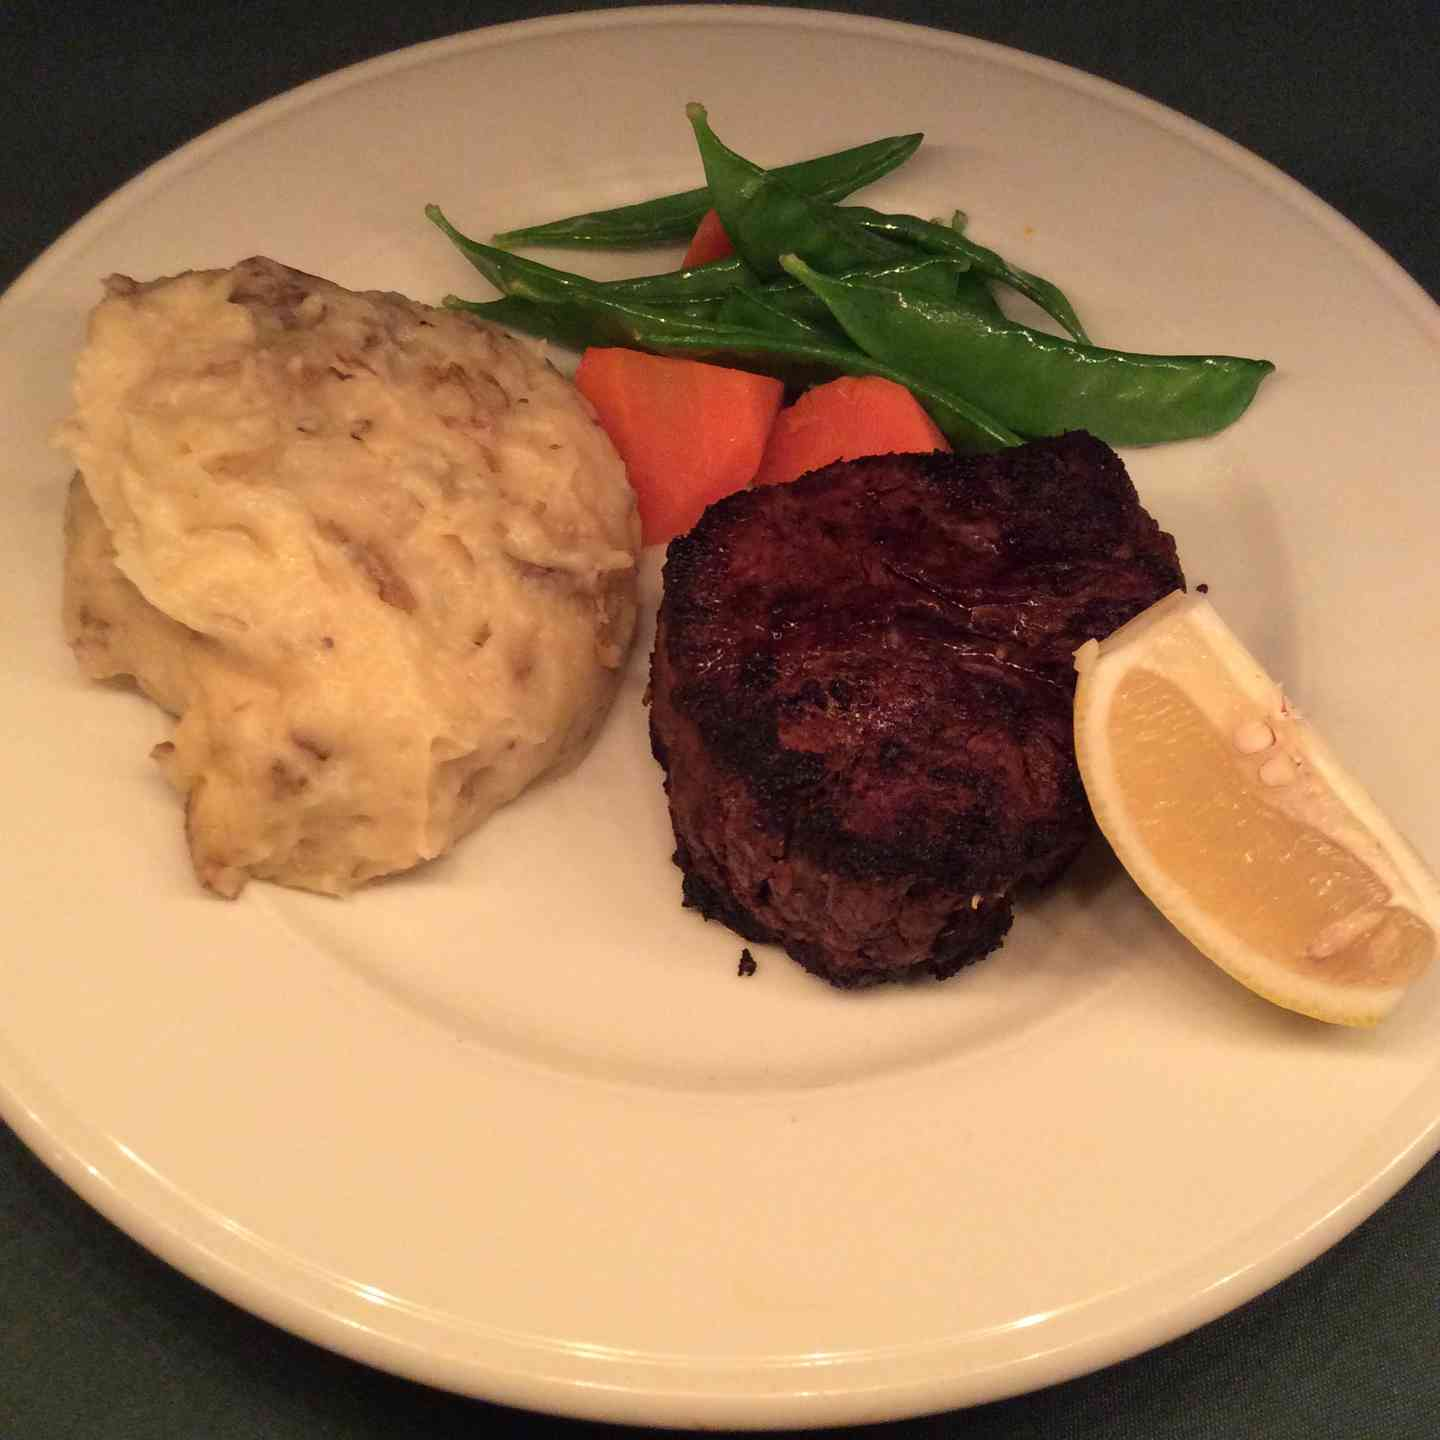 Blackened Filet Mignon